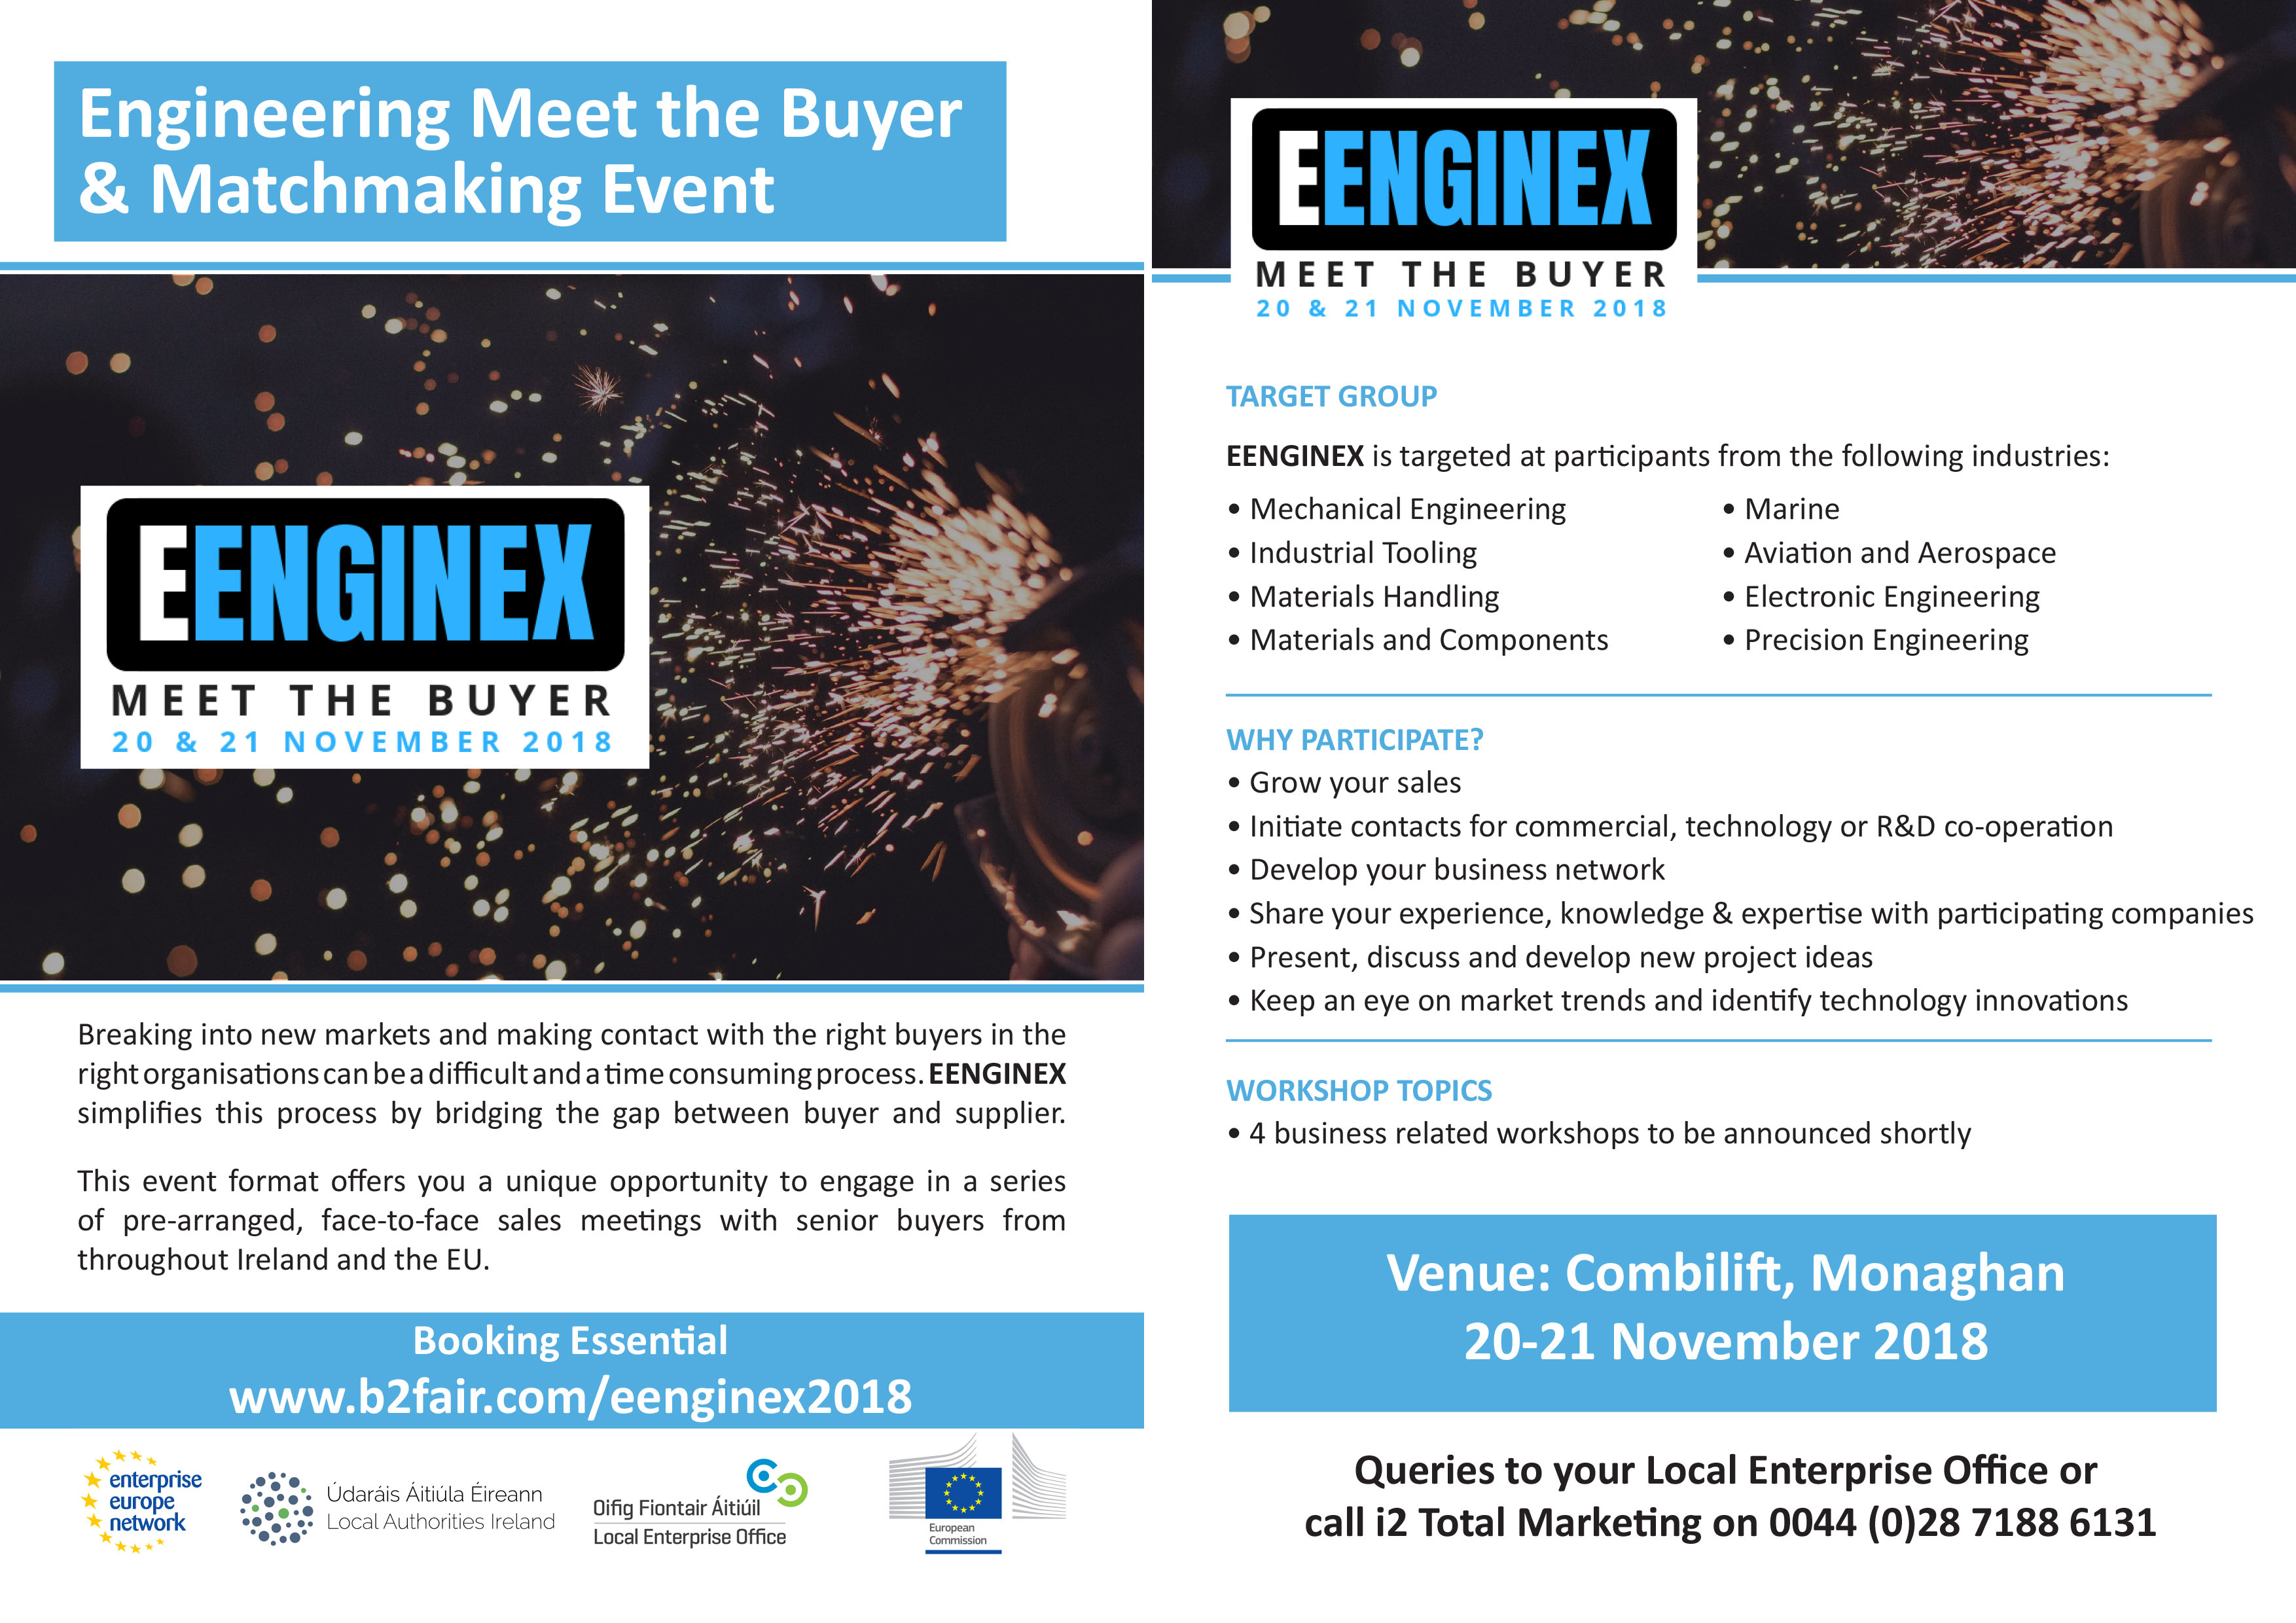 Engineering Meet the Buyer